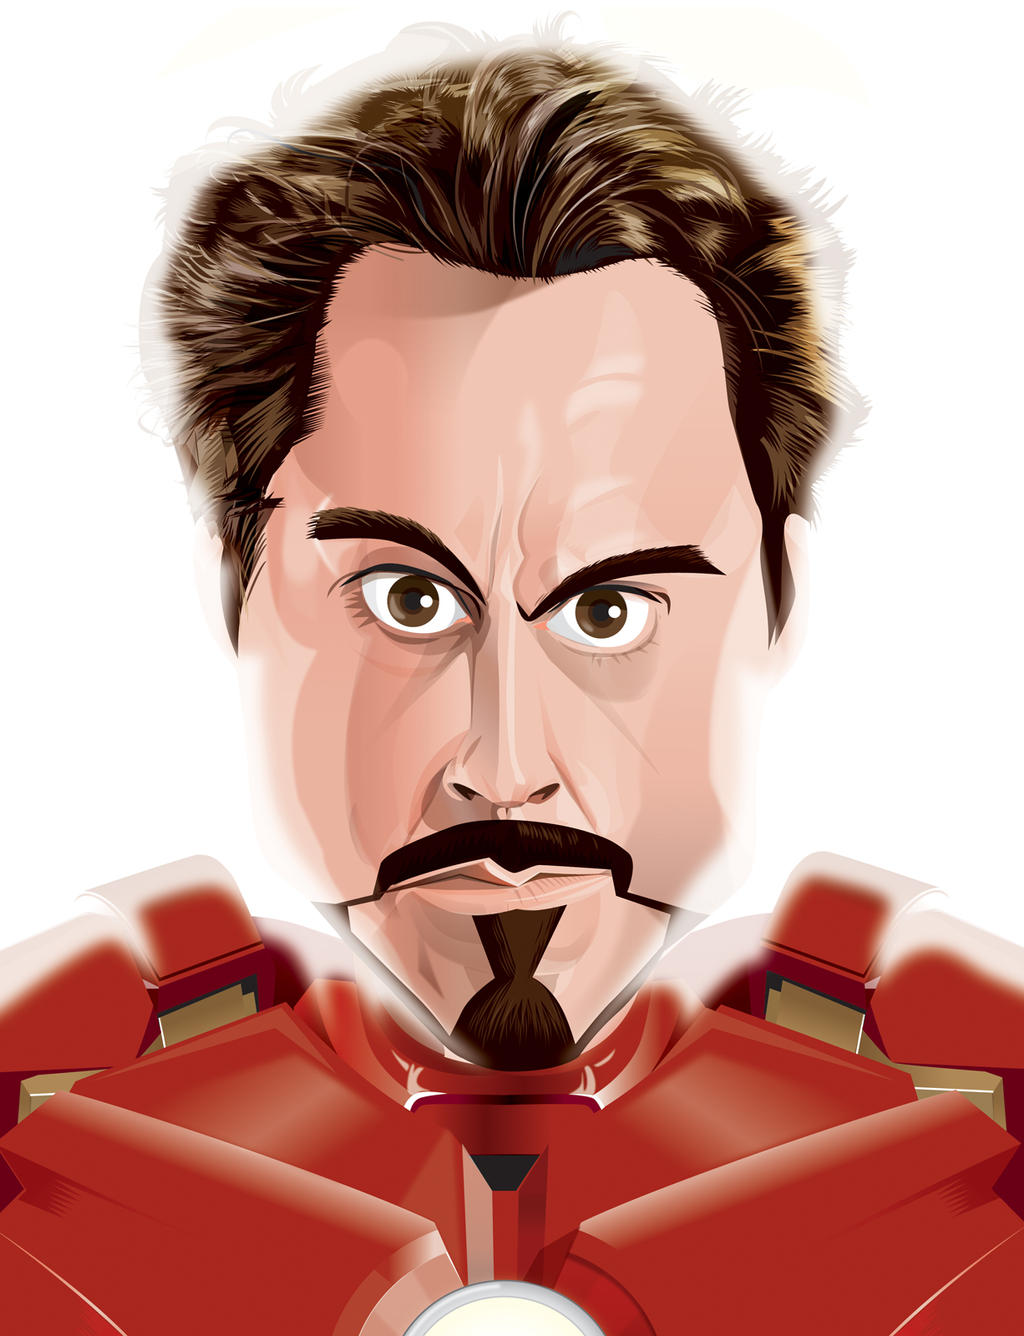 Tony Stark/iron Man by kgreene